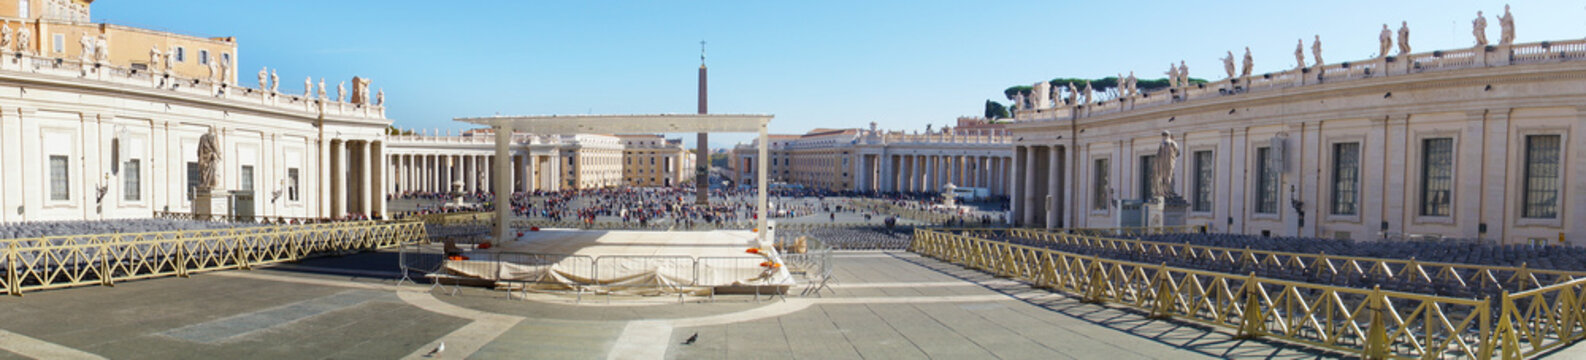 View of San Peter's Square from St. Peter's Basillica